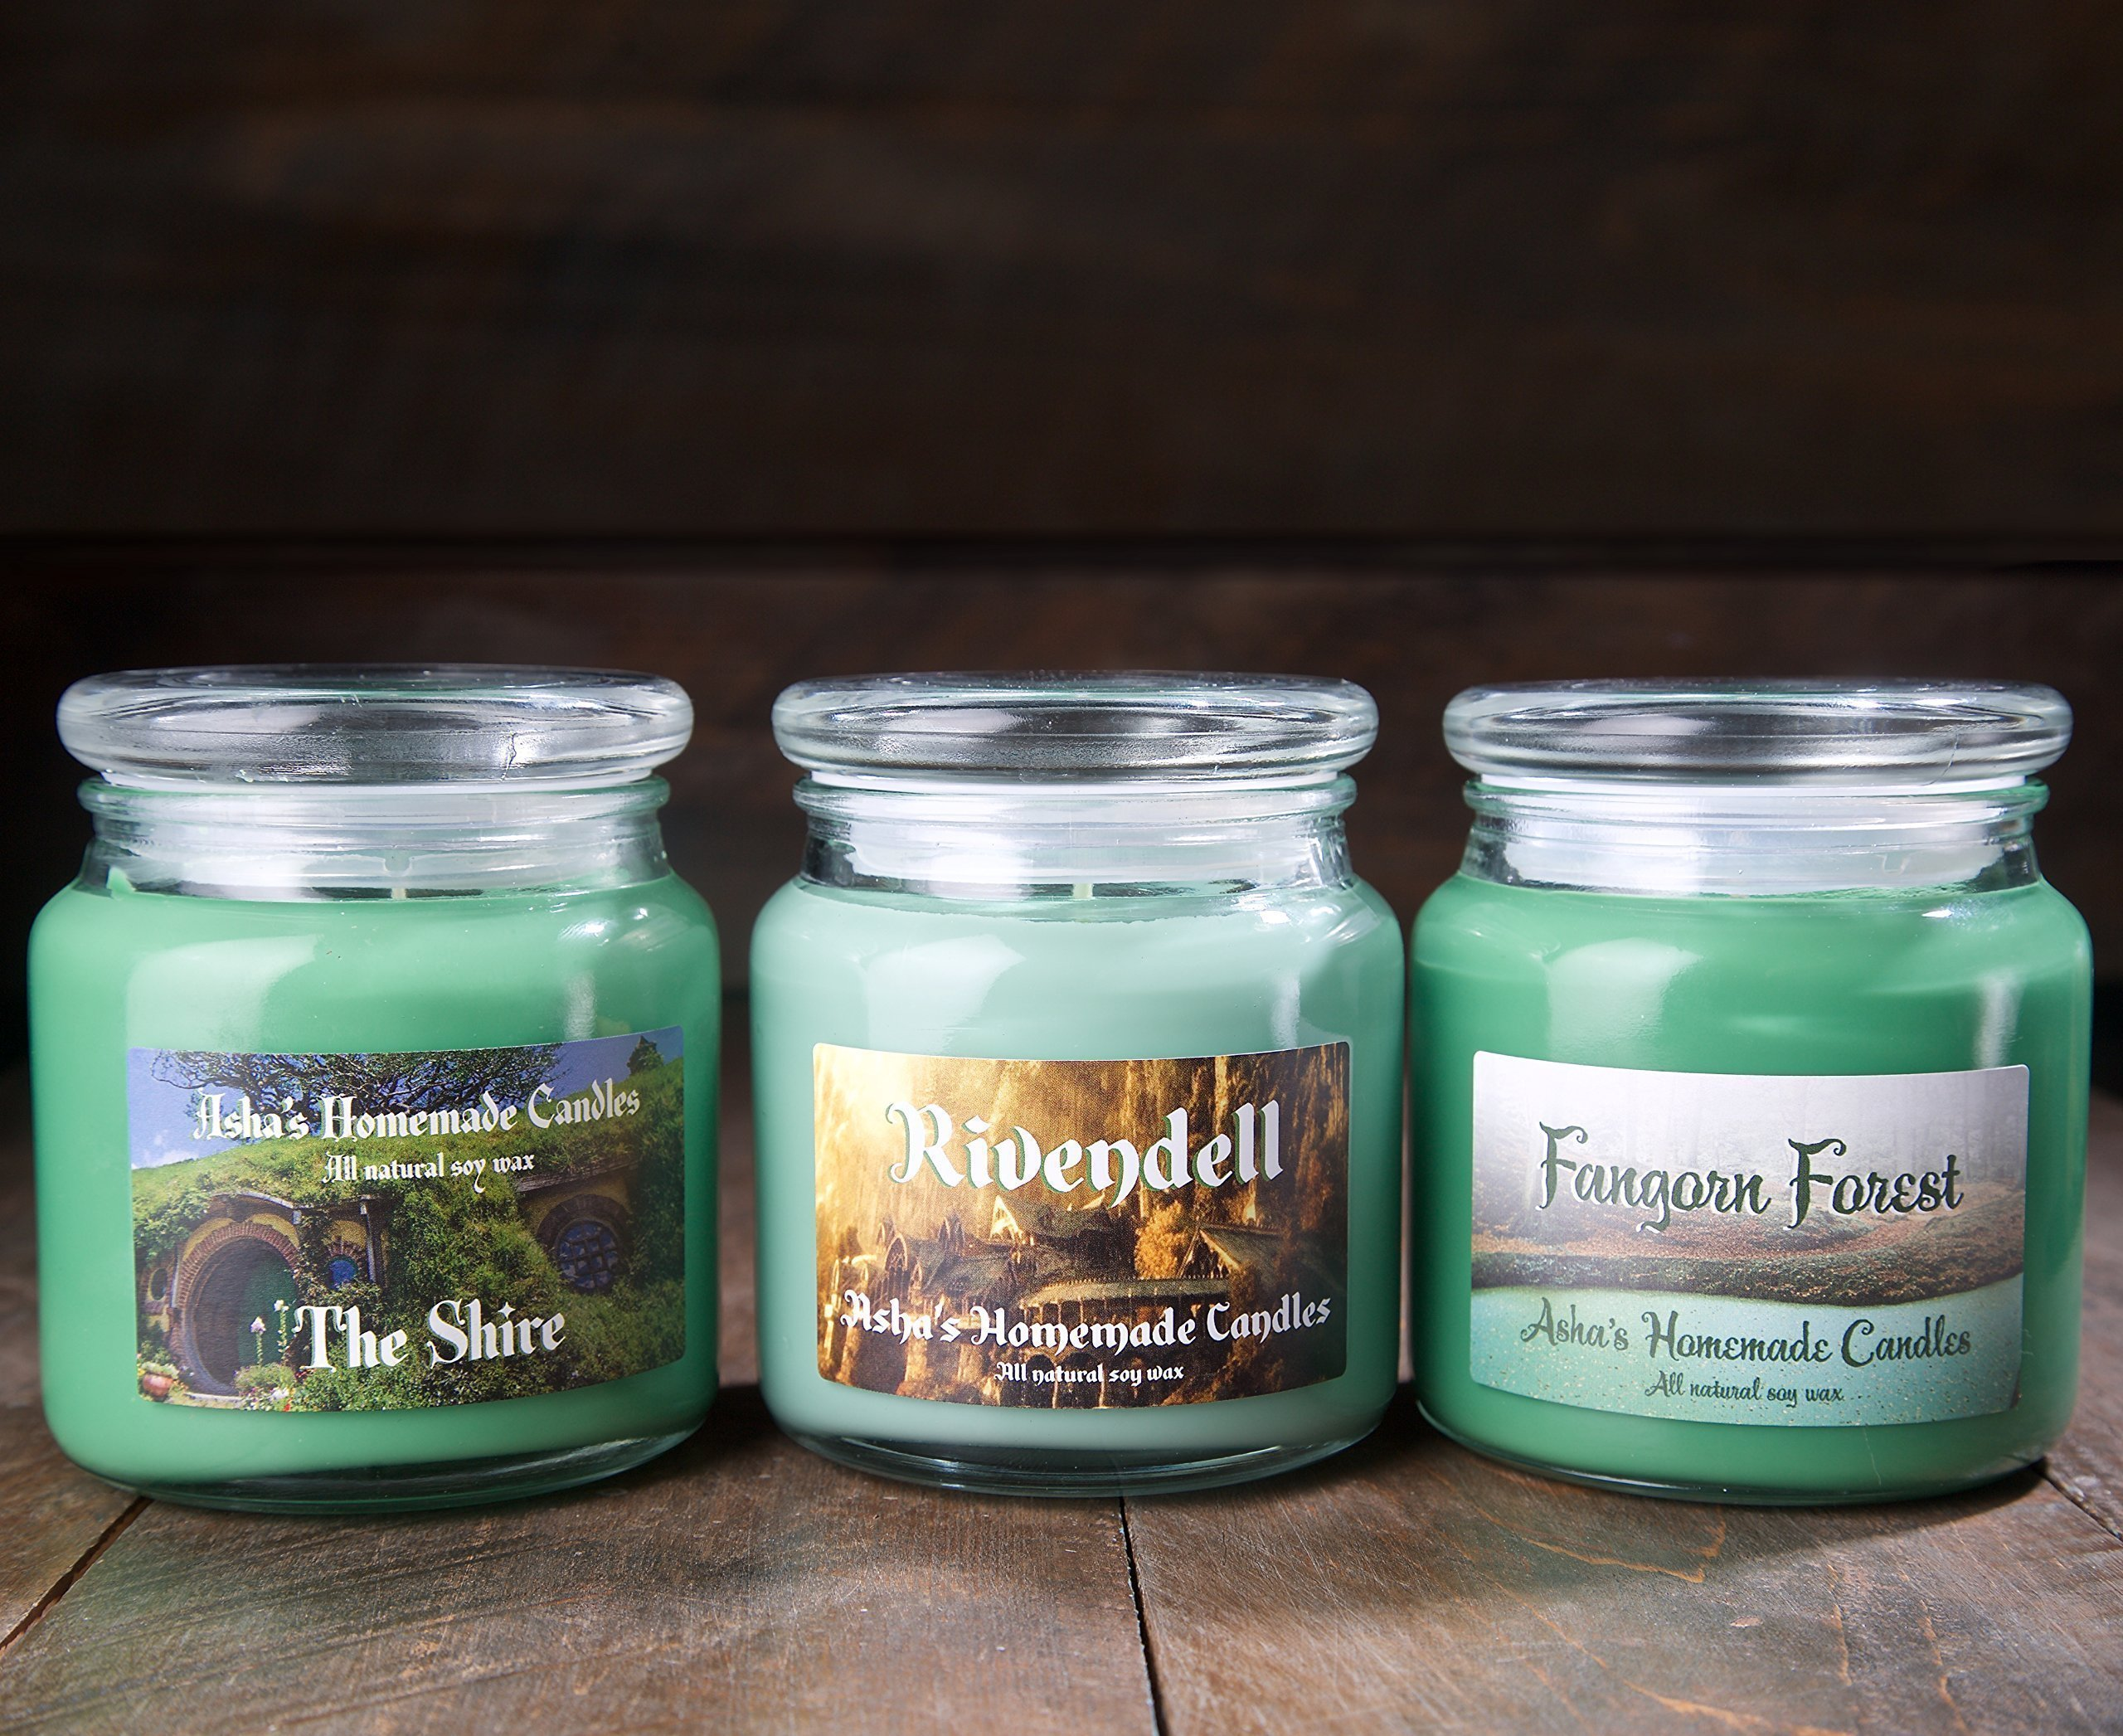 Lord of the Rings Soy Candles - Set of 3 - Shire - Rivendell - Fangorn Forest - 16 oz. Apothecary Jars